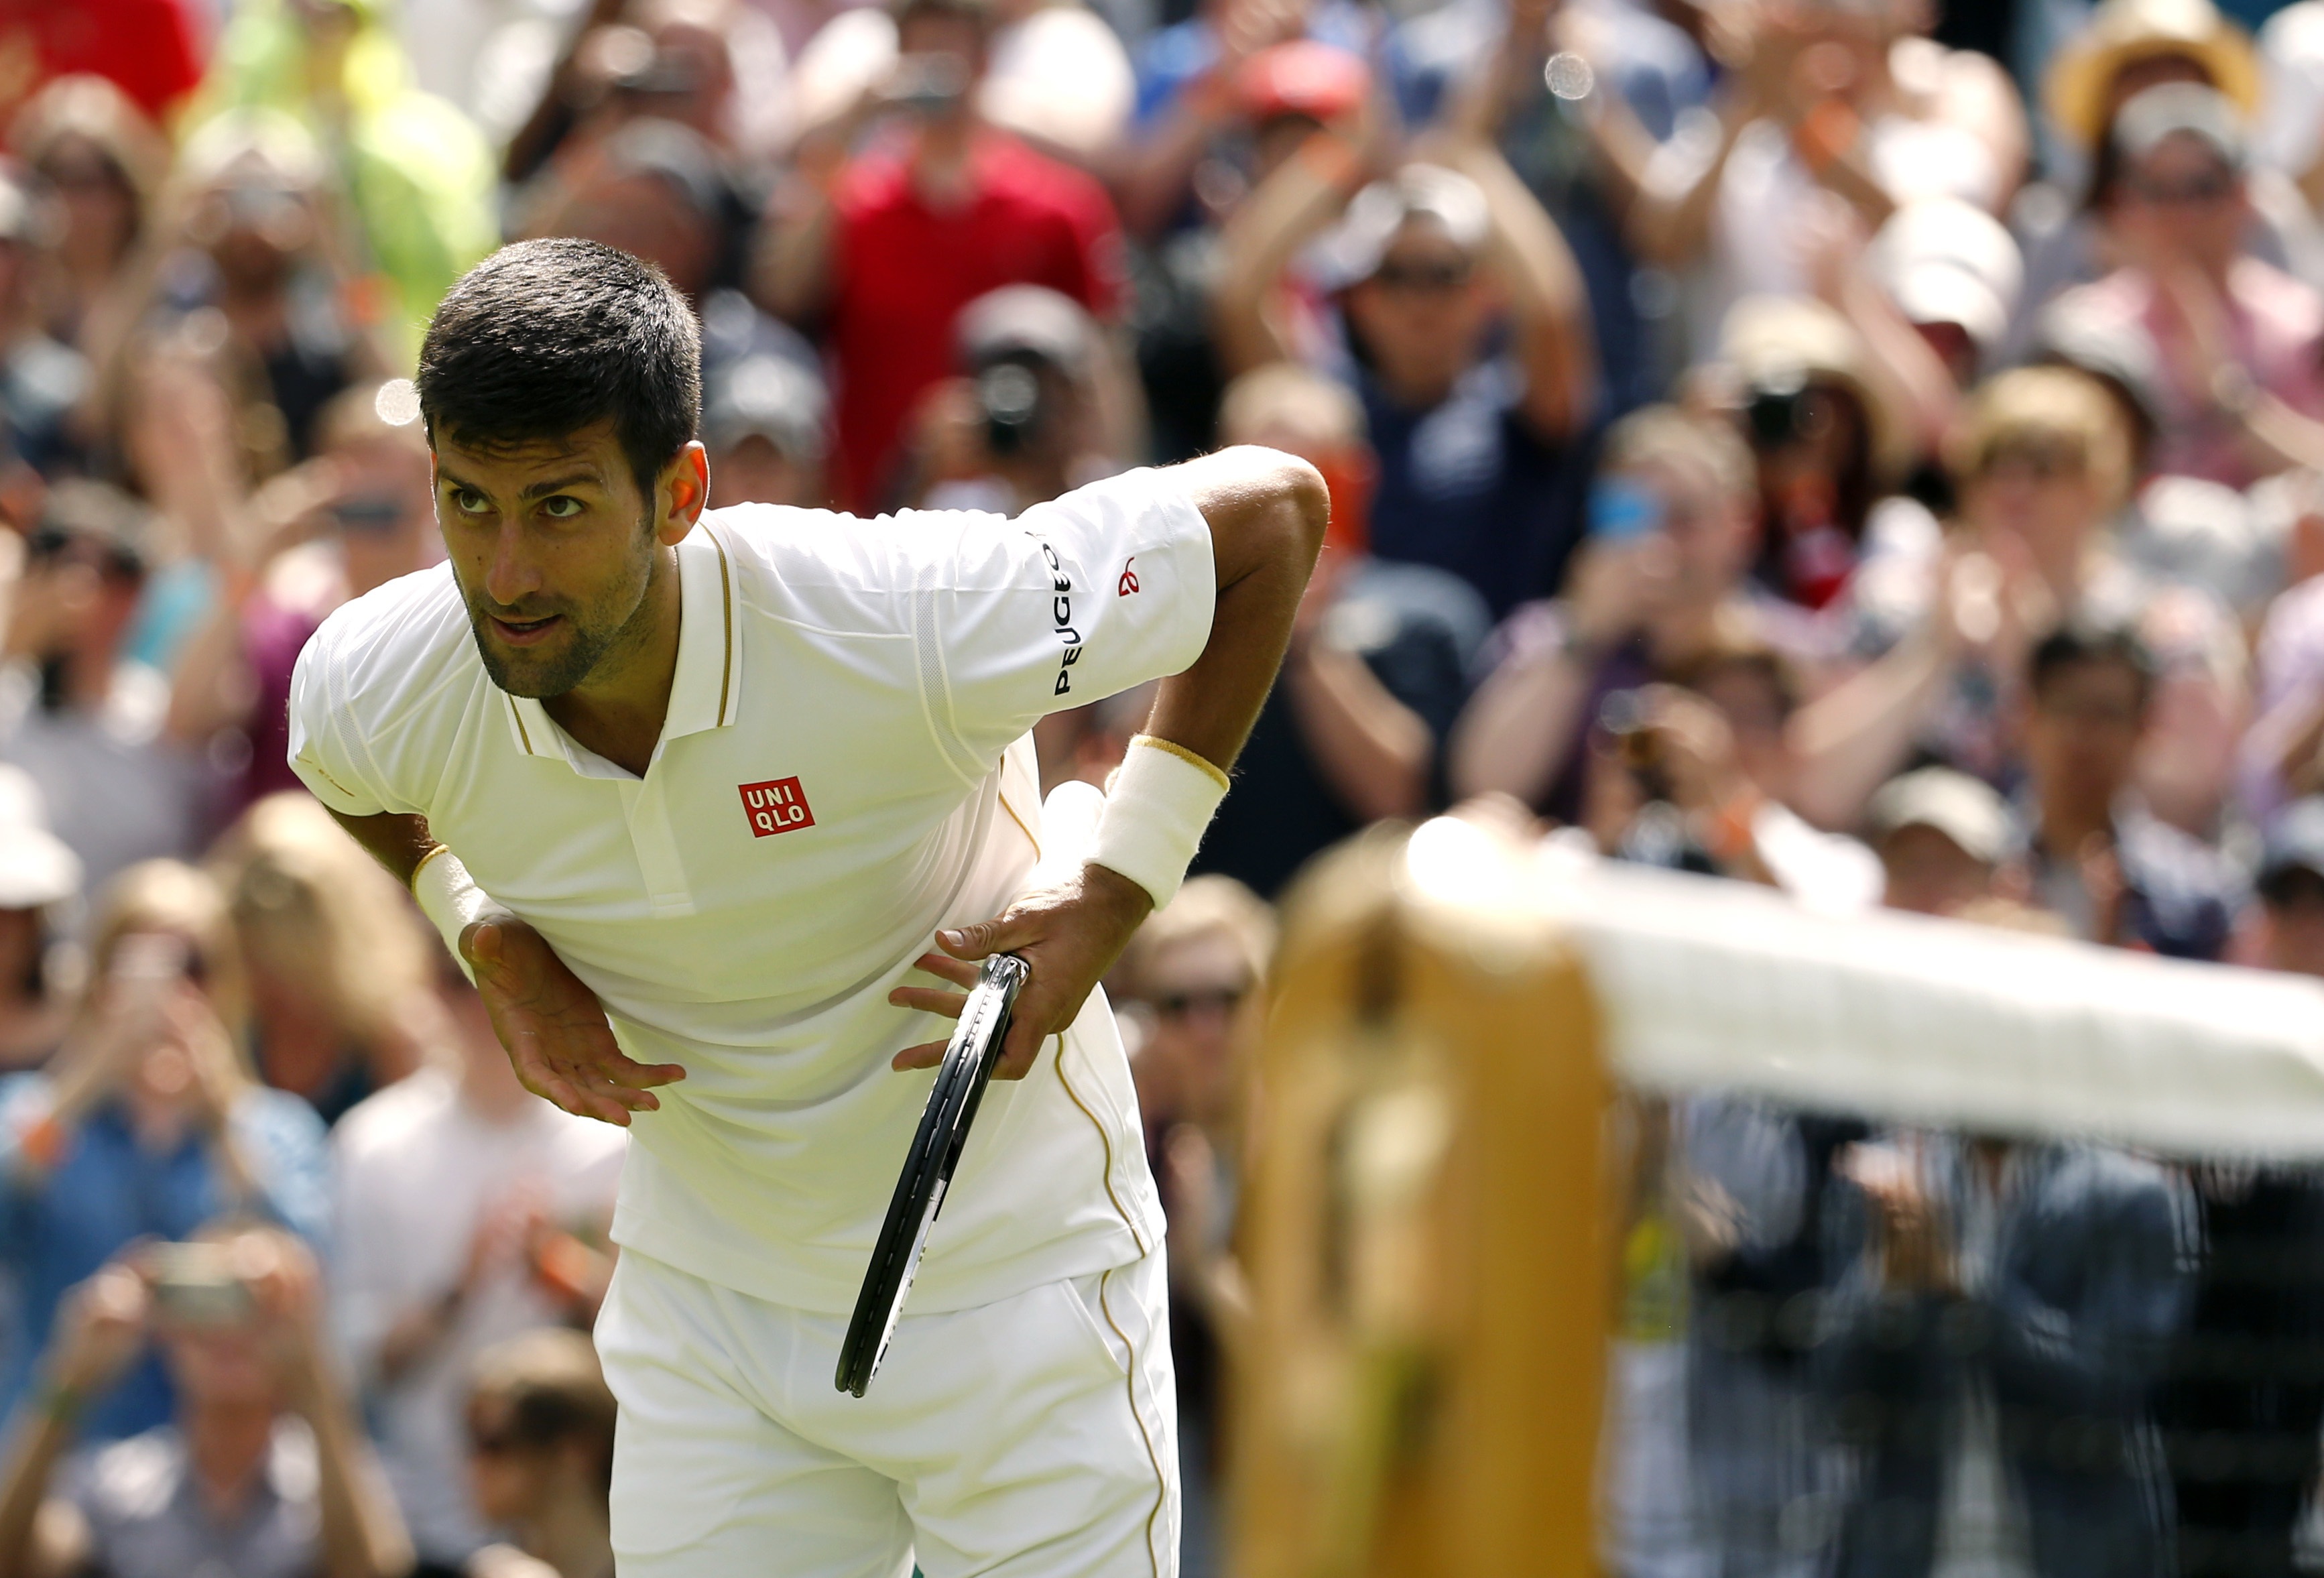 Novak Djokovic of Serbia celebrates after beating James Ward of Britain during their men's singles match on day one of the Wimbledon Tennis Championships in London, Monday, June 27, 2016. (AP Photo/Alastair Grant)